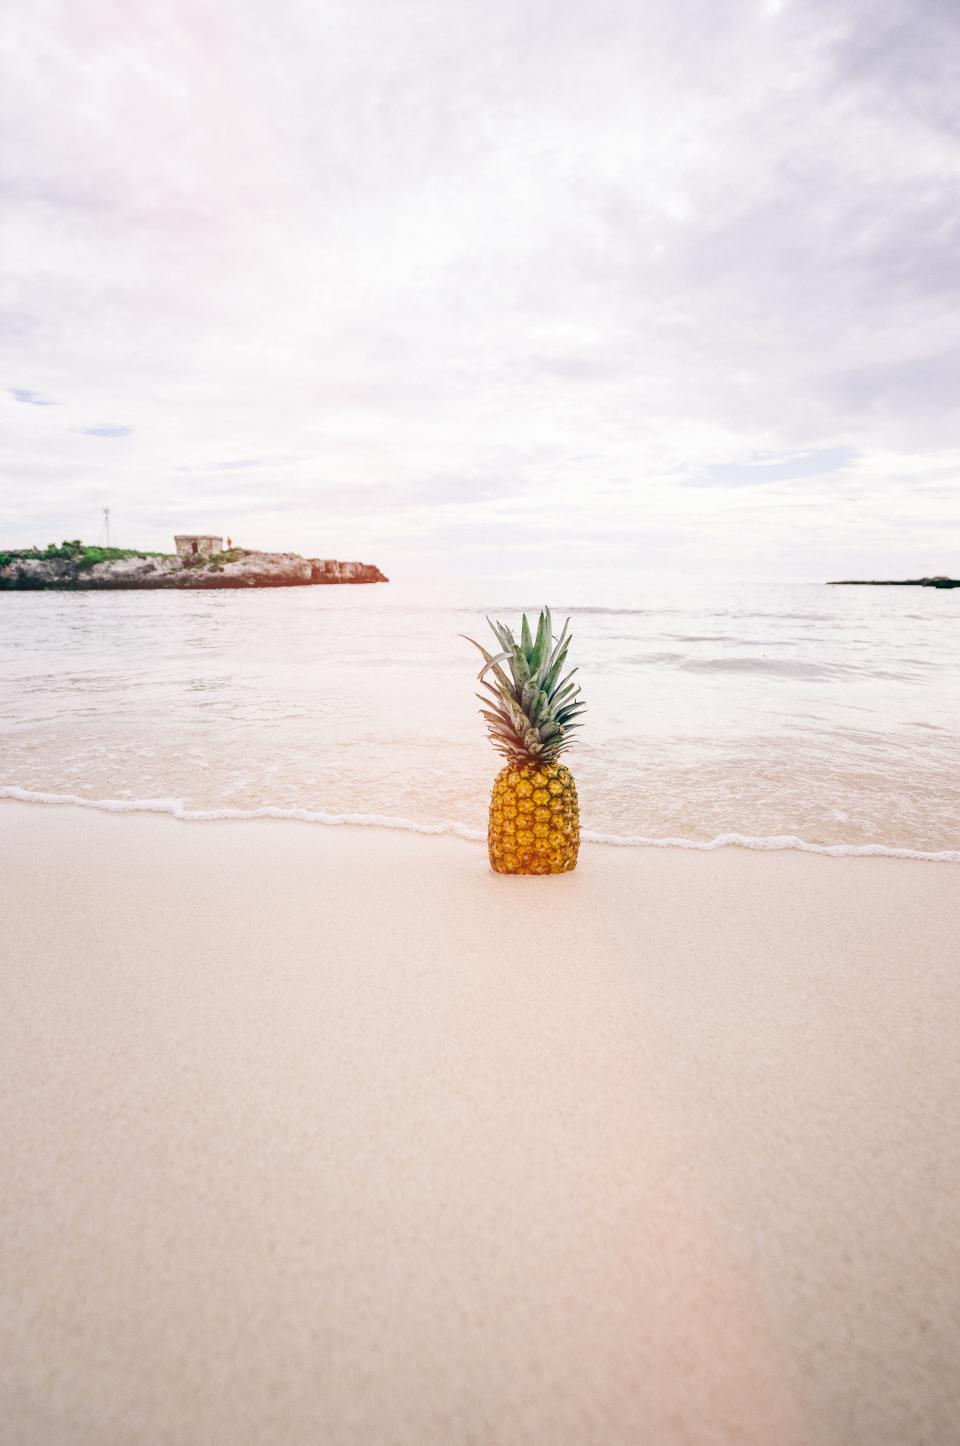 pineapple dessert appetizer fruit juice crop beach ocean sea sand waves nature